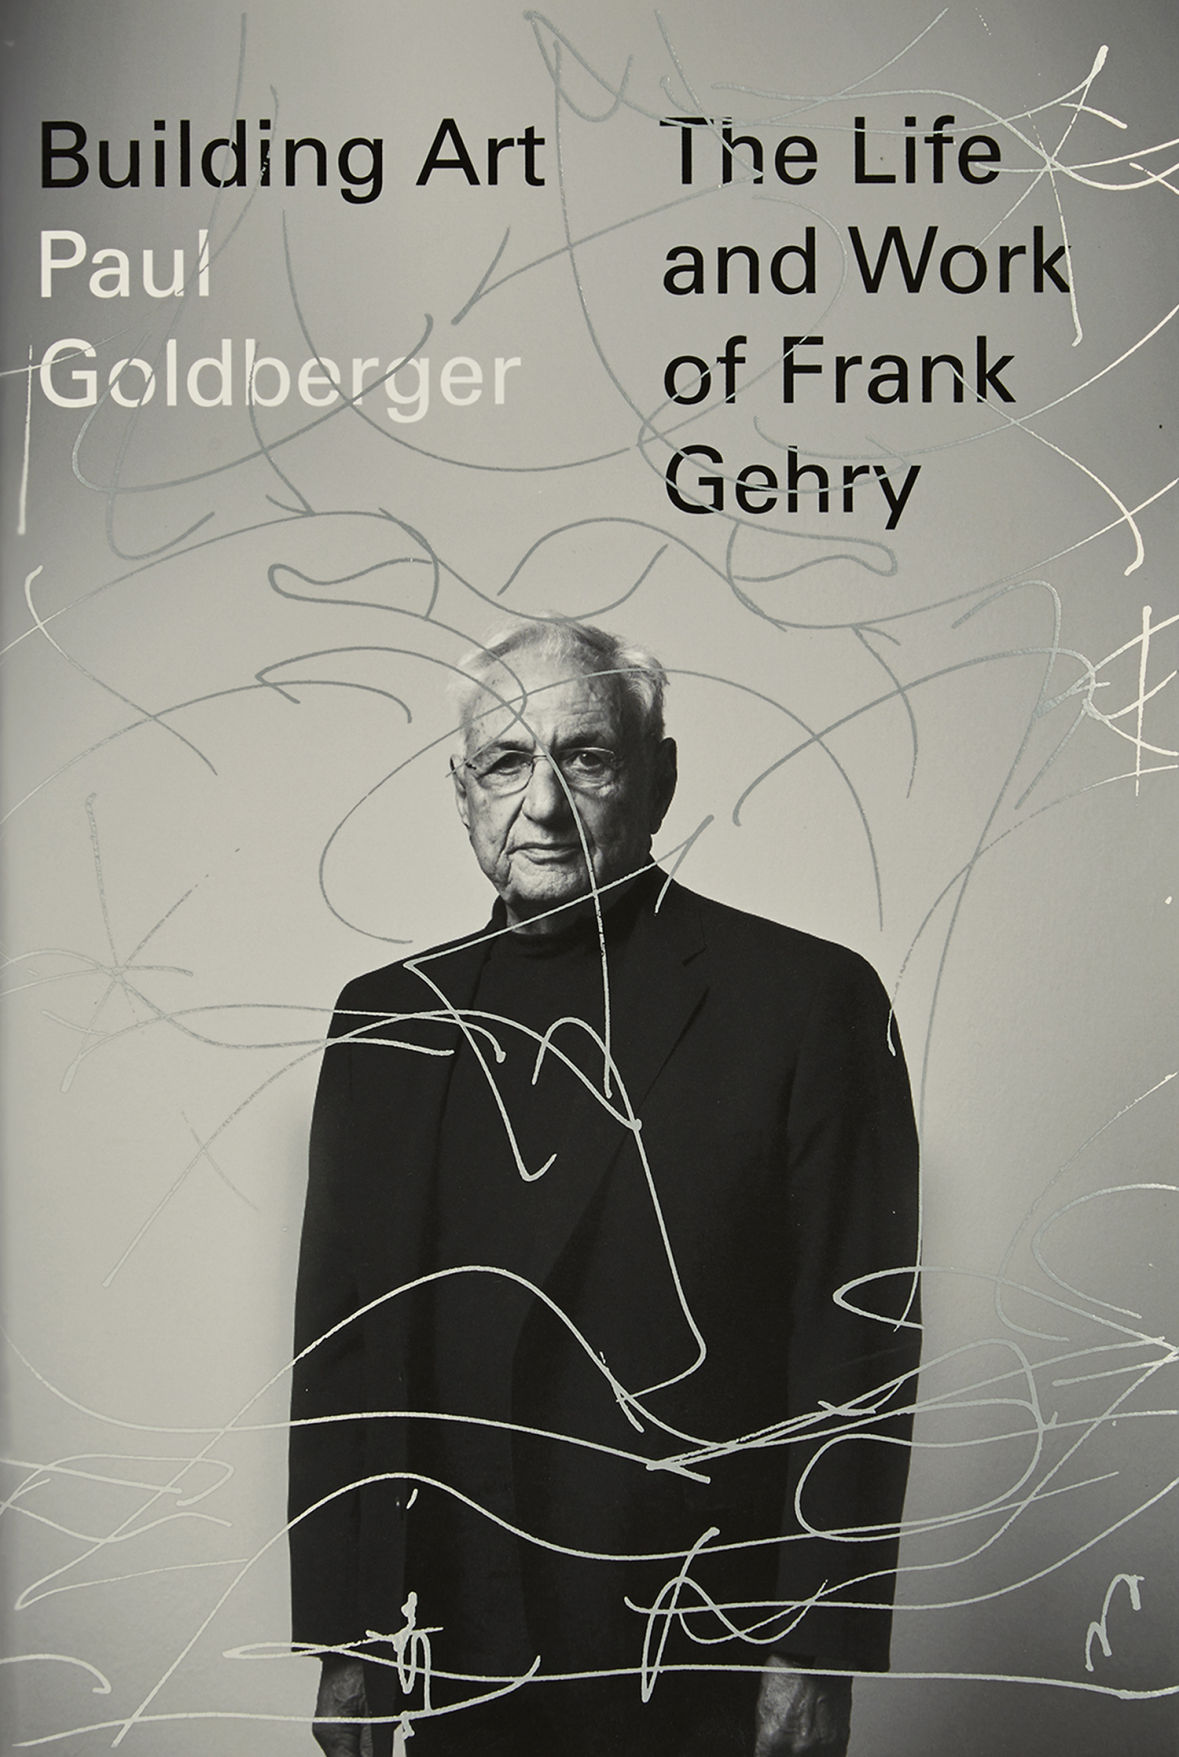 A Comprehensive Biography of A Famed Architect